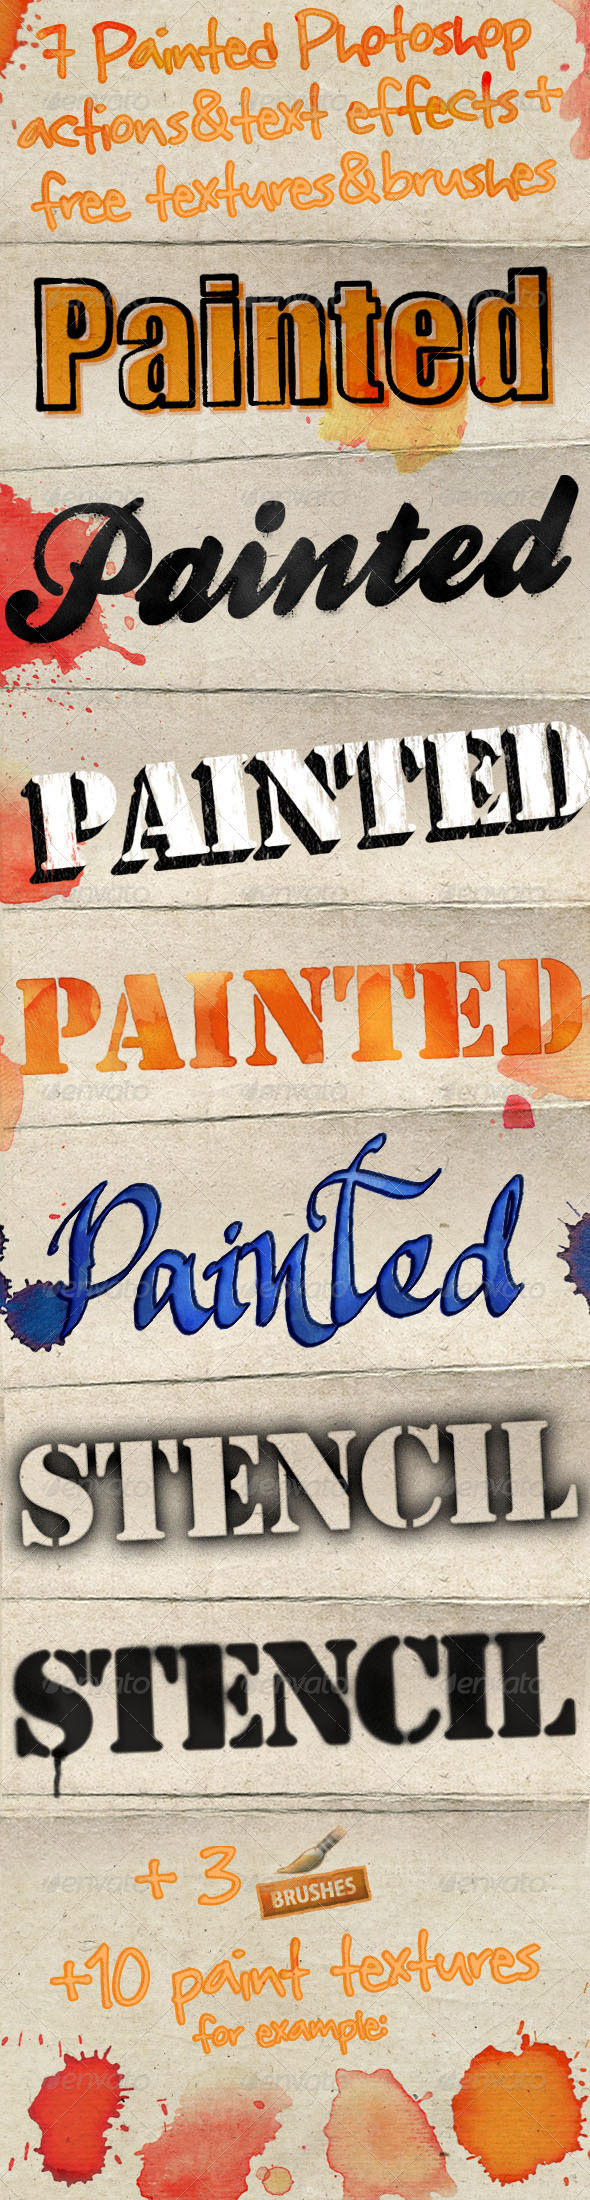 GraphicRiver Painted Photoshop Text Effects & Actions 2919617